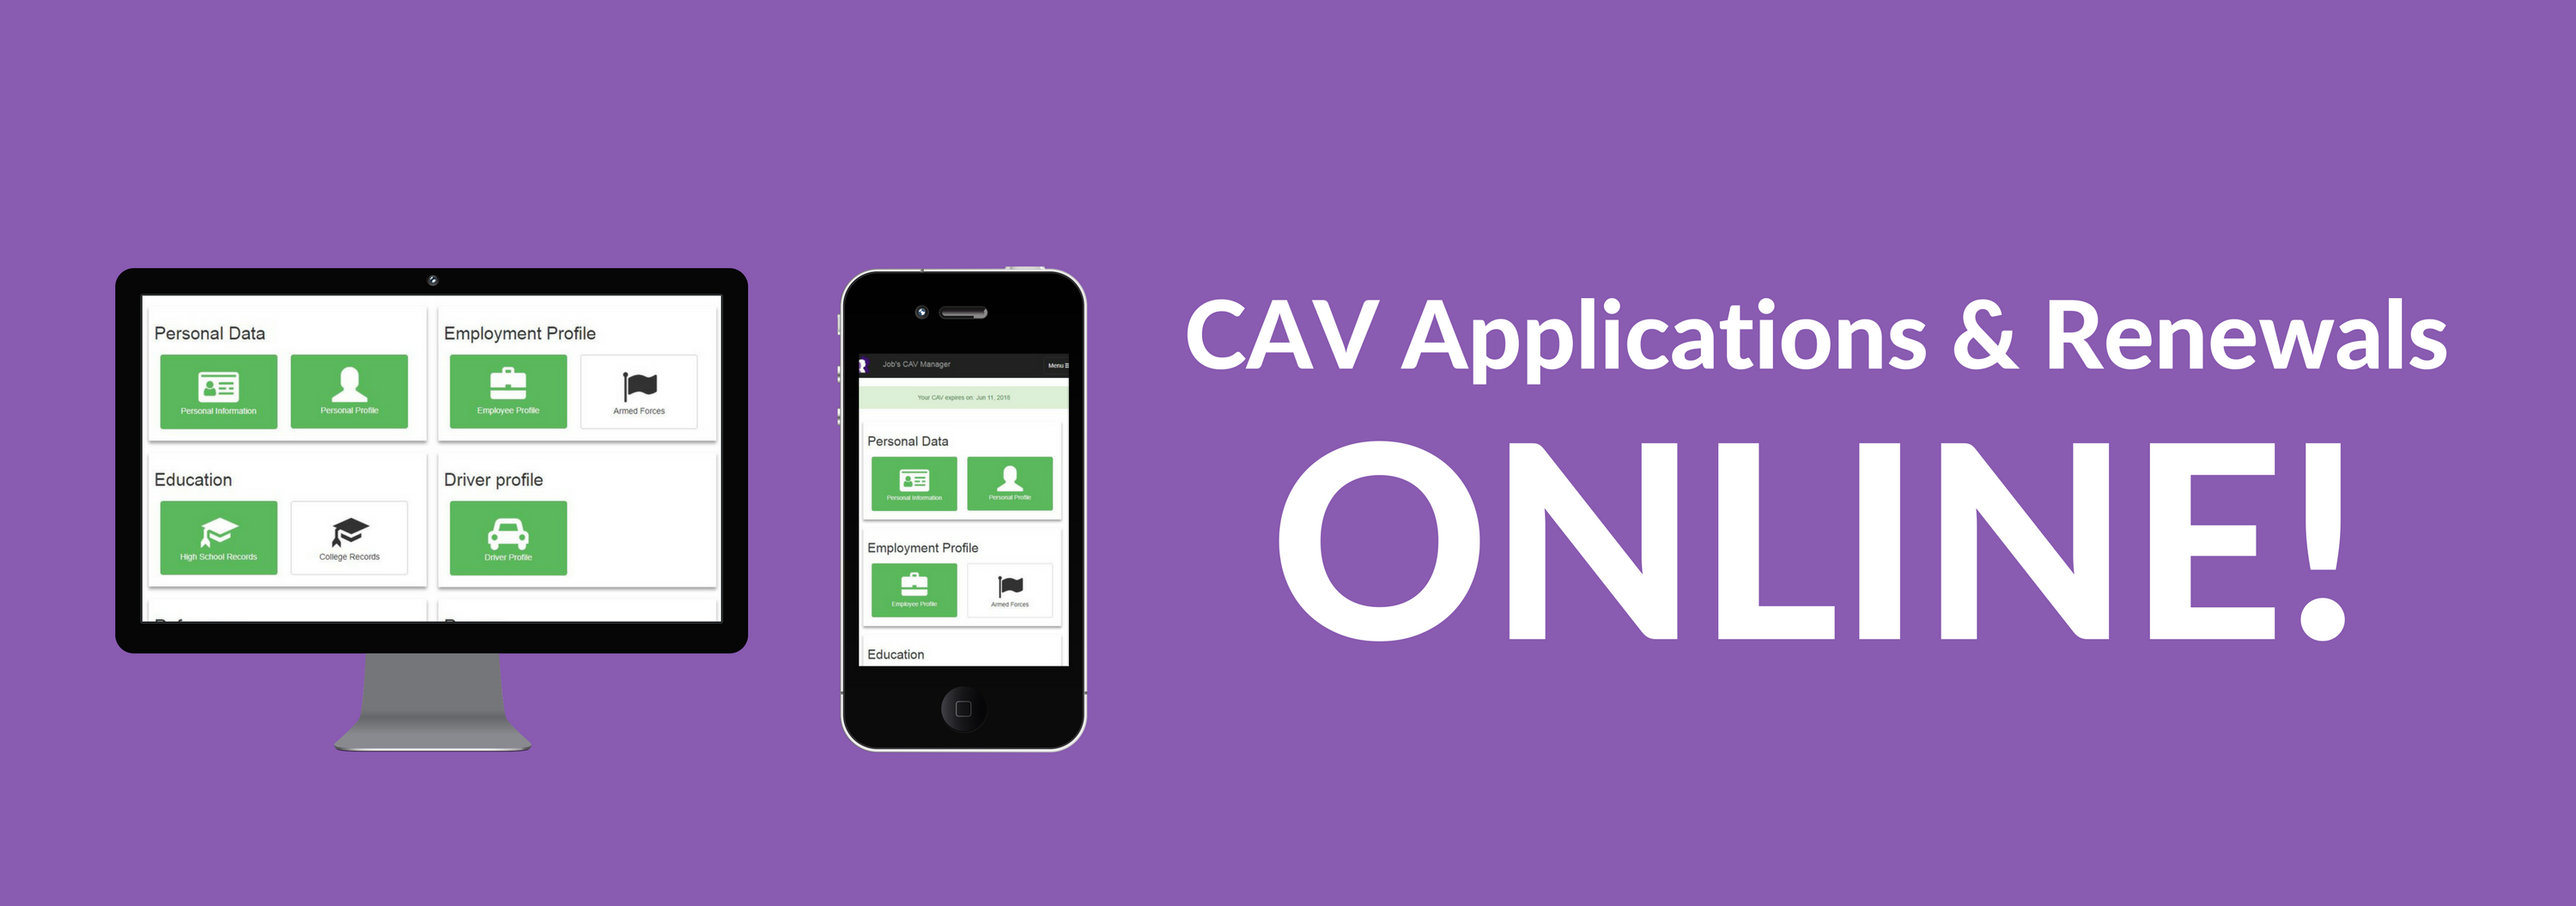 CAV Applications & Renewals